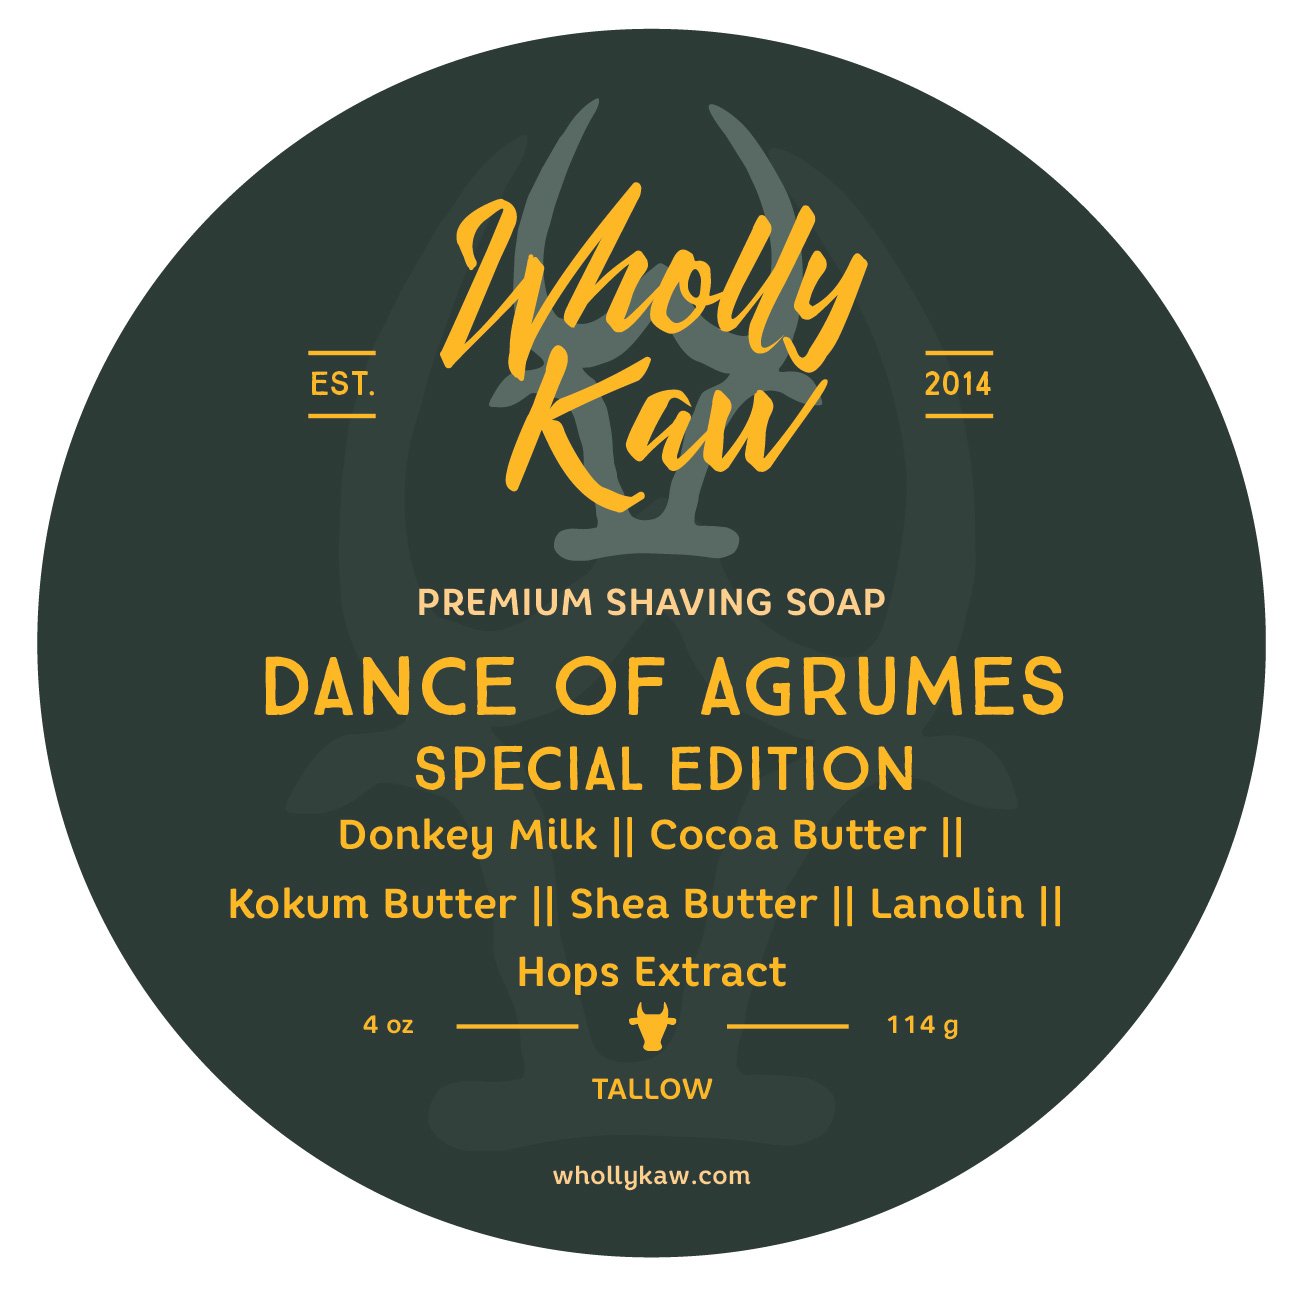 Wholly Kaw - Dance of Agrumes - Soap image